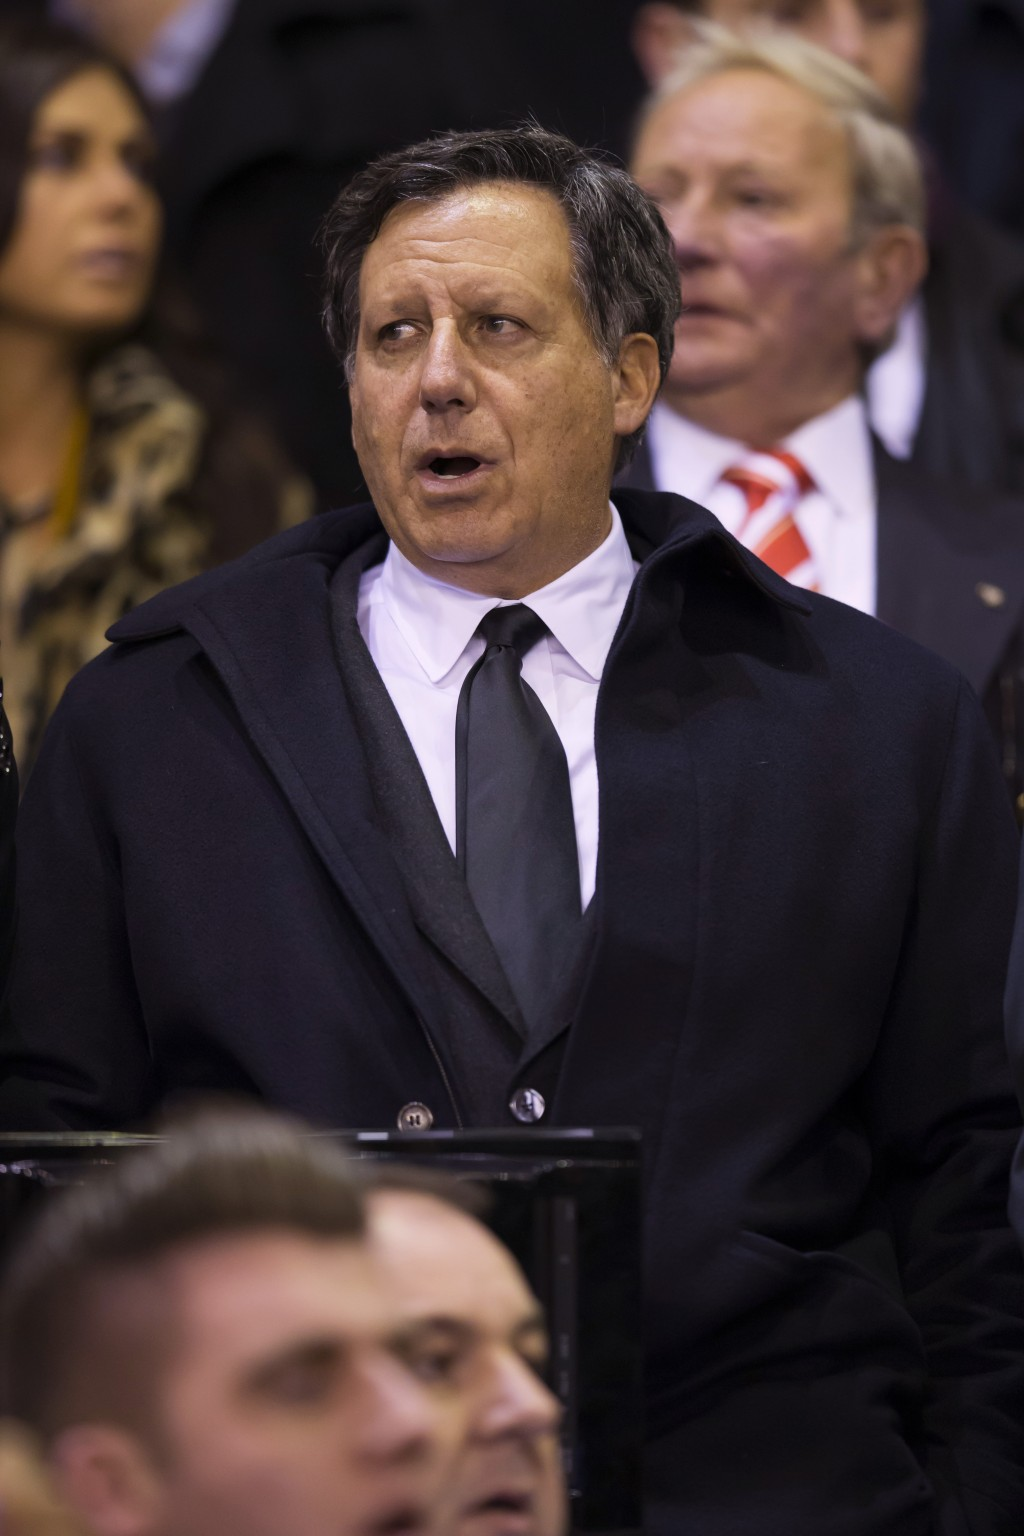 FILE - In this photo taken on Oct. 22, 2015, Liverpool chairman Tom Werner takes to the stands before the Europa League Group B soccer match between L...